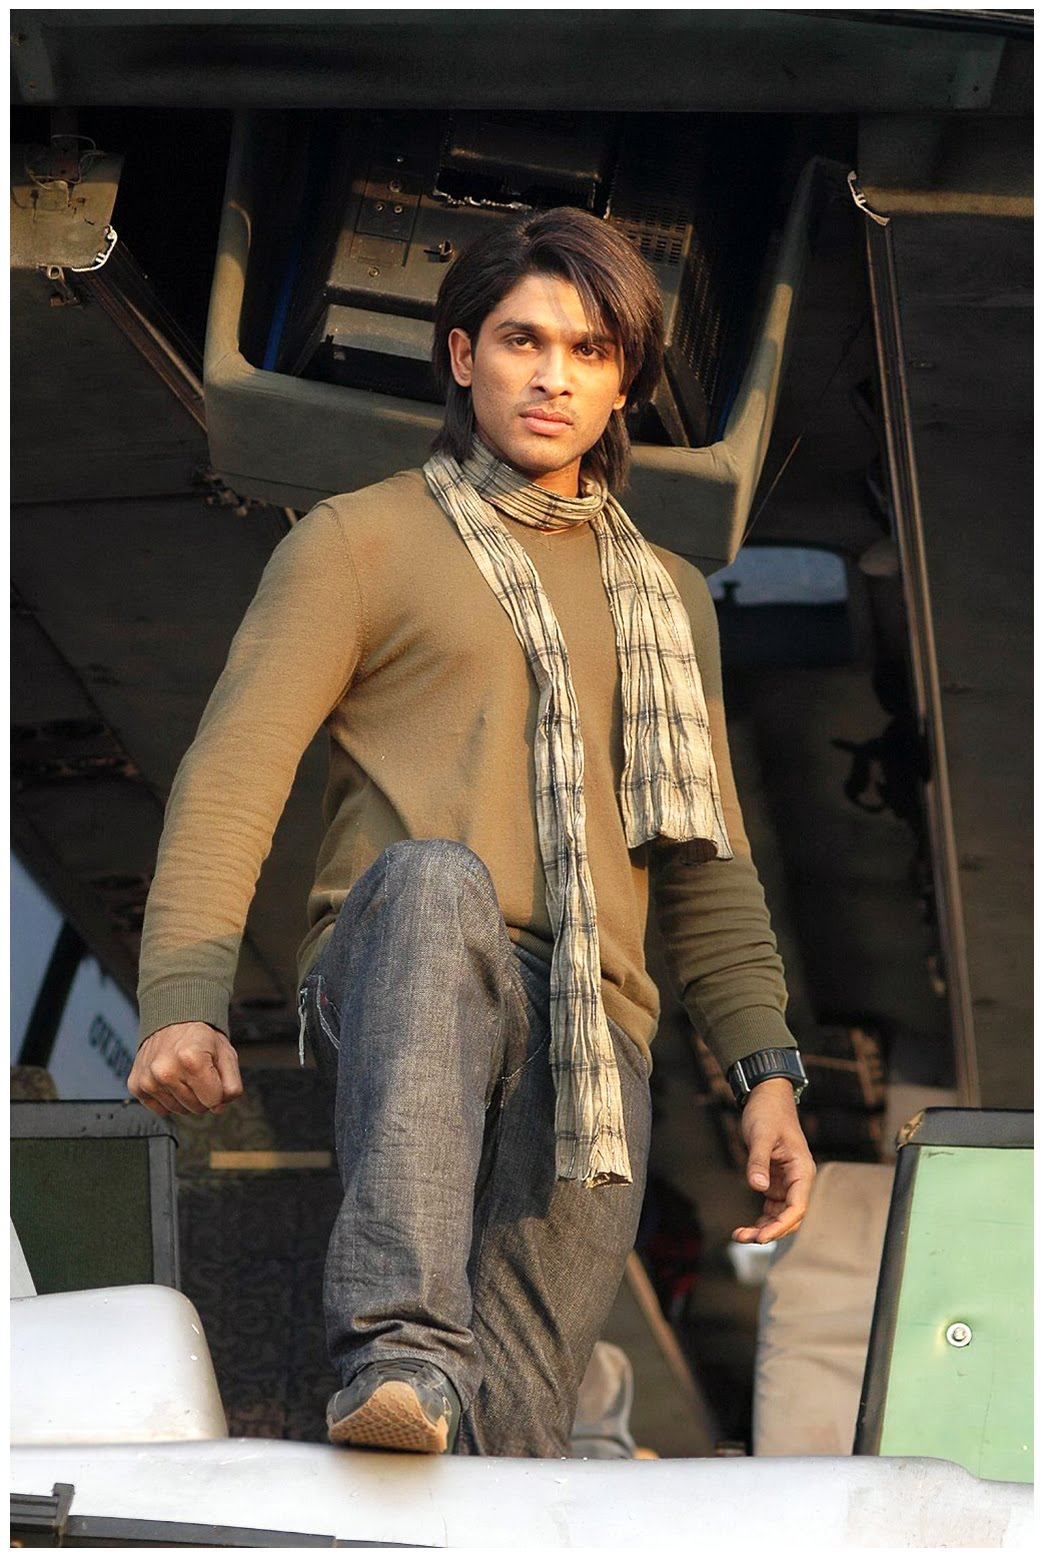 latest unseen aarya 2 stills arya 2 images aarya2 pics arya 2 photos